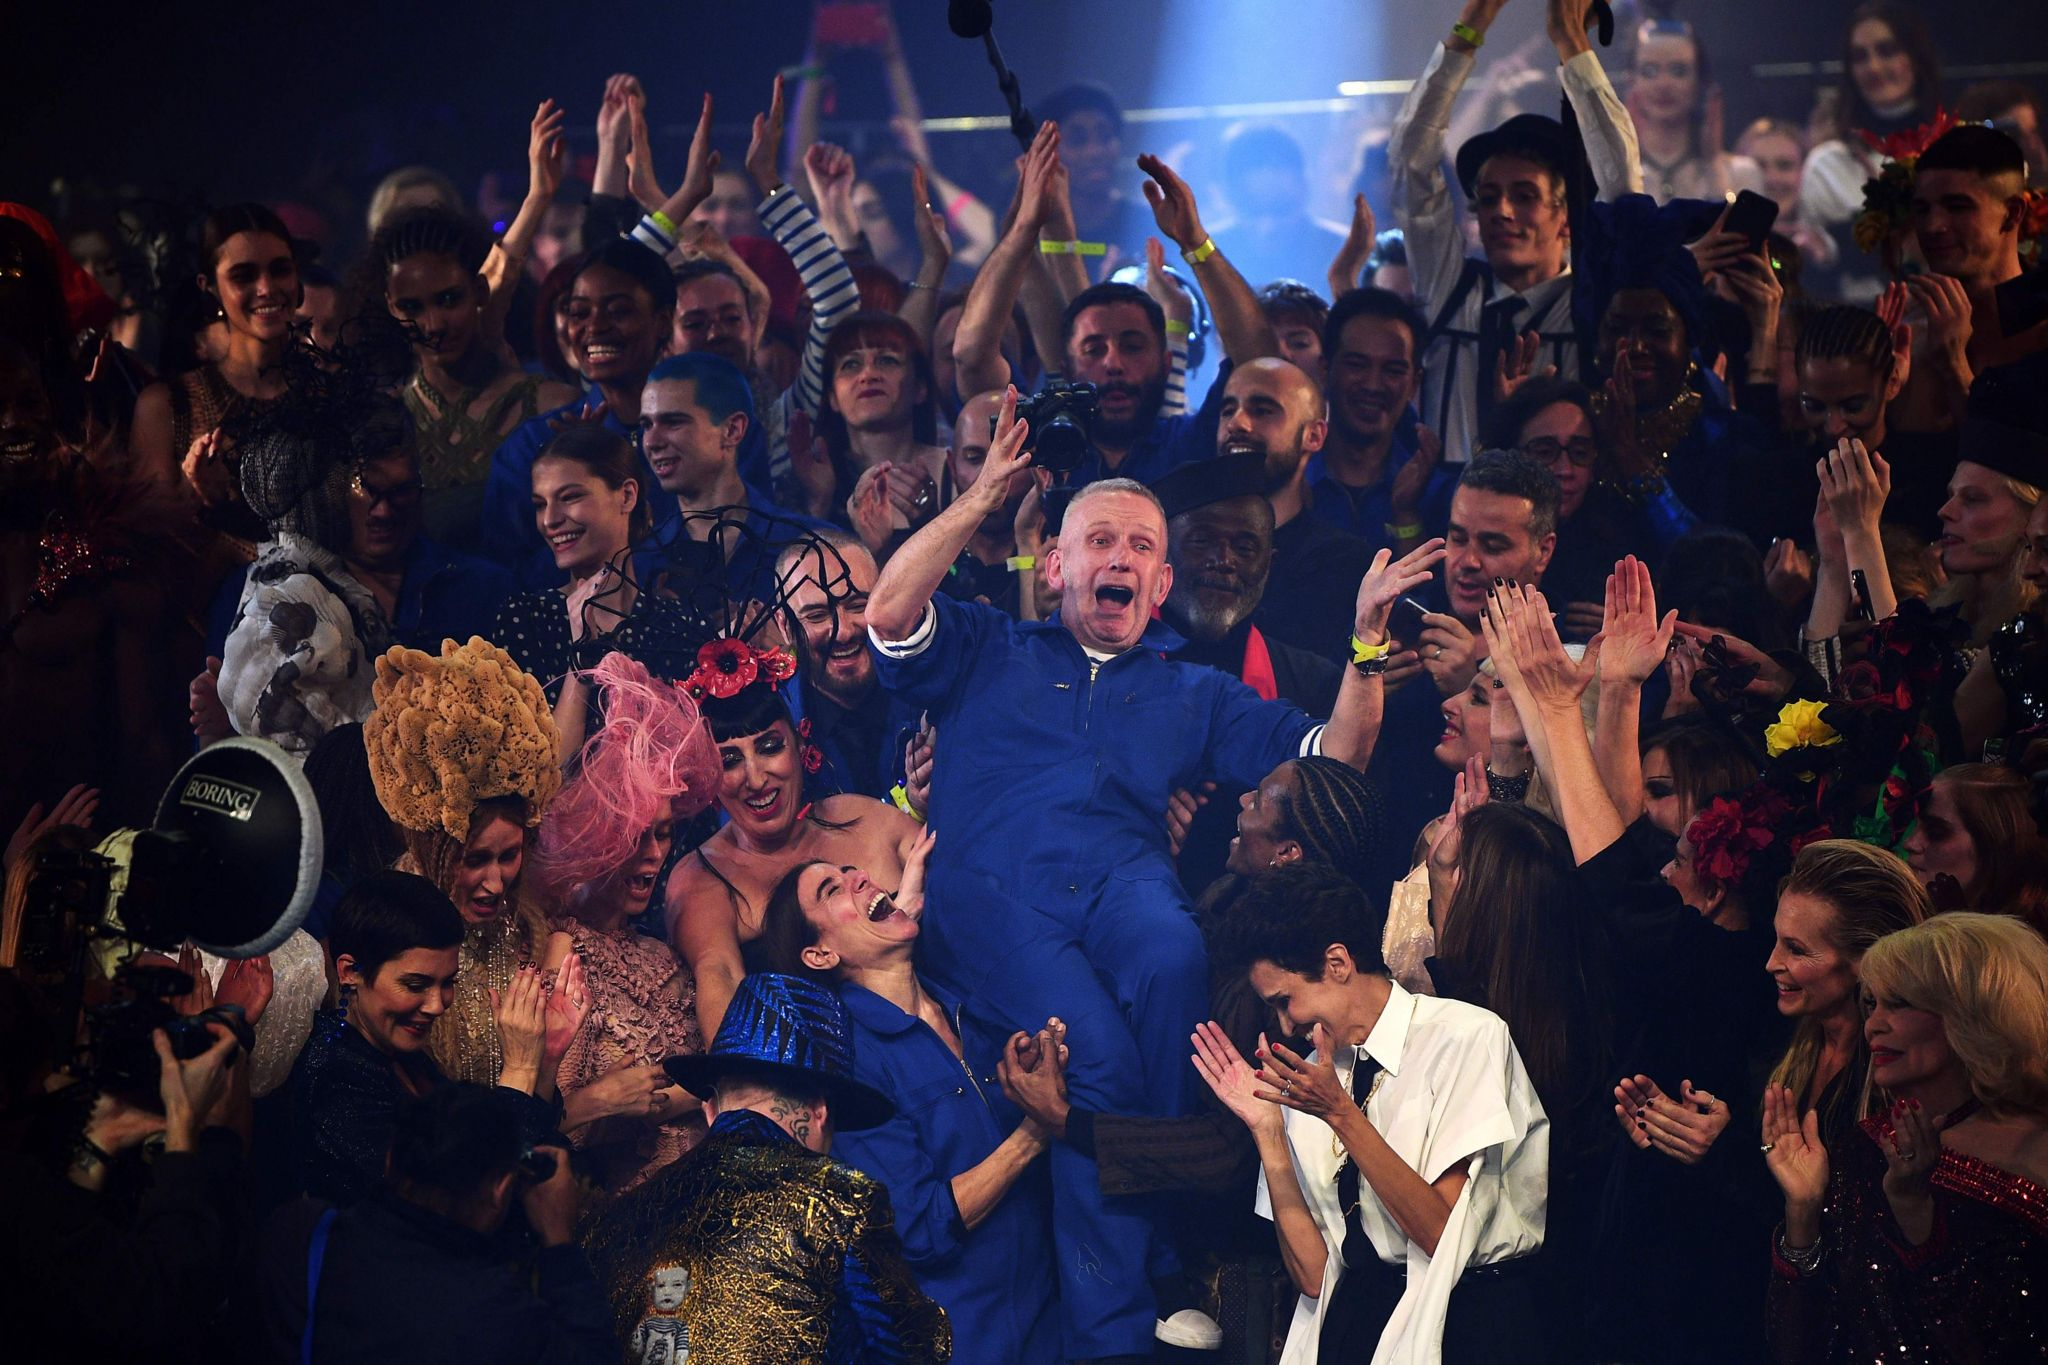 Jean Paul Gaultier at the end of his fashion show